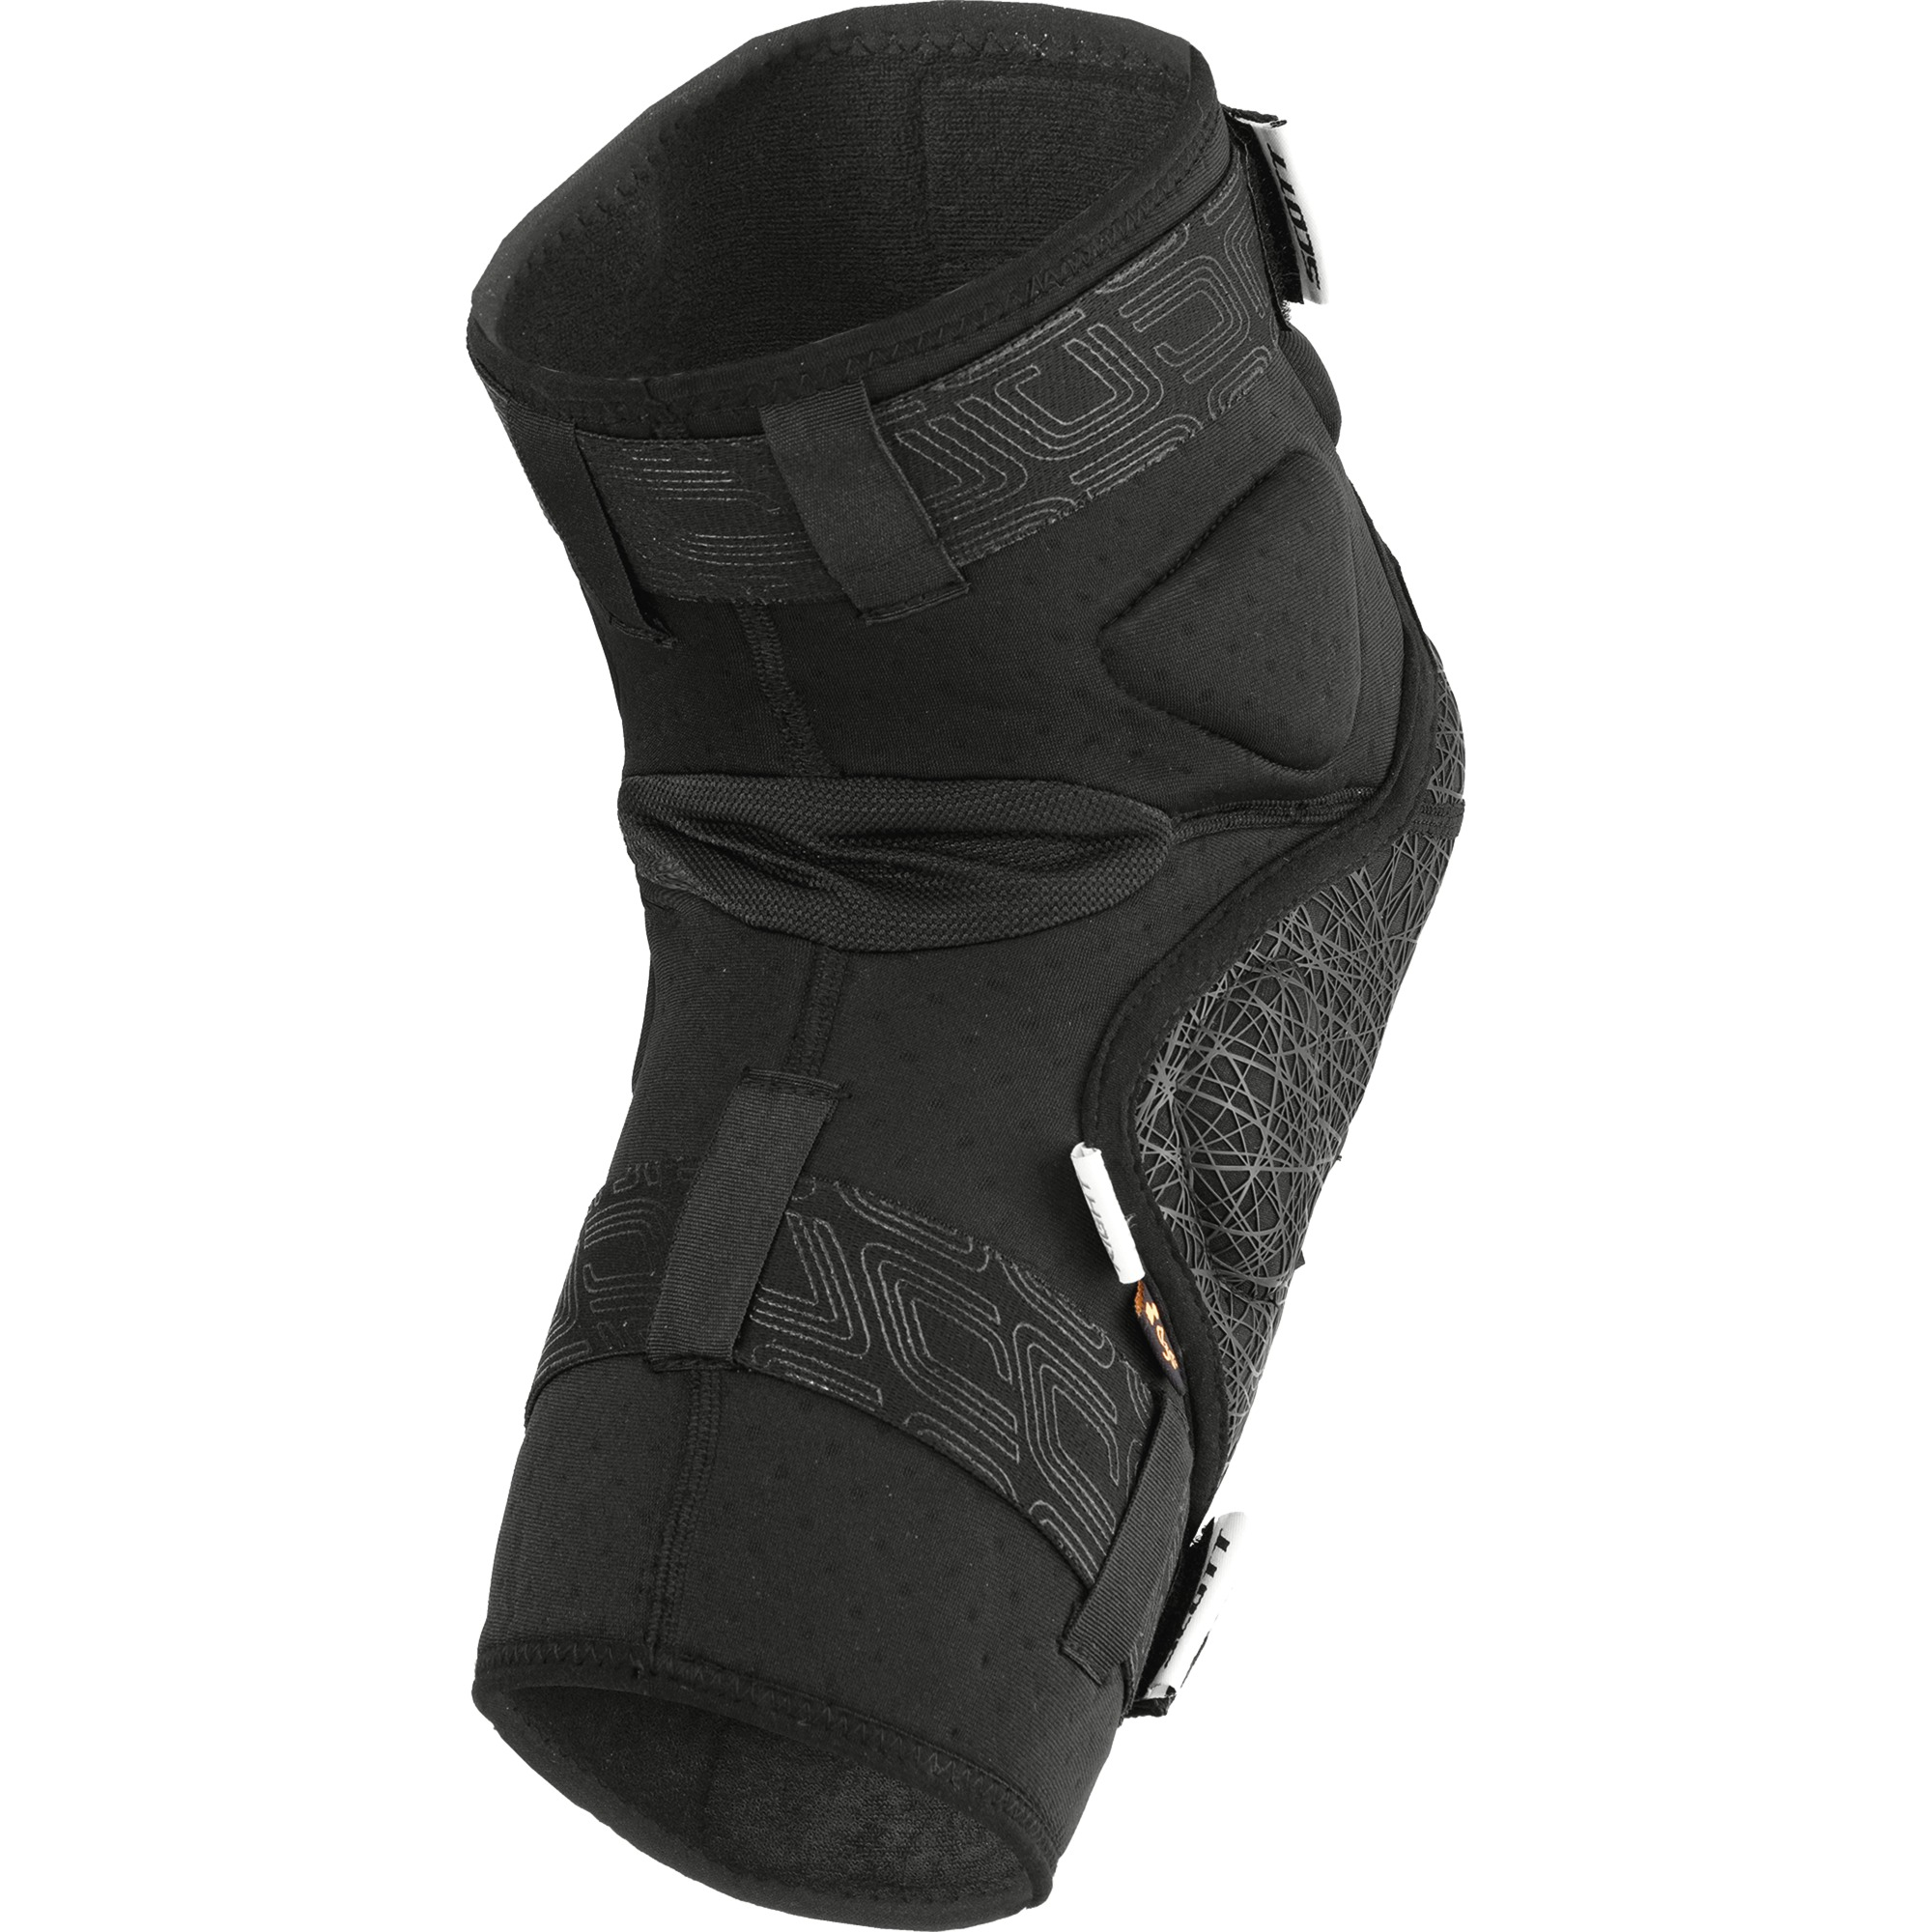 SCOTT Grenade Pro II Knee Guards